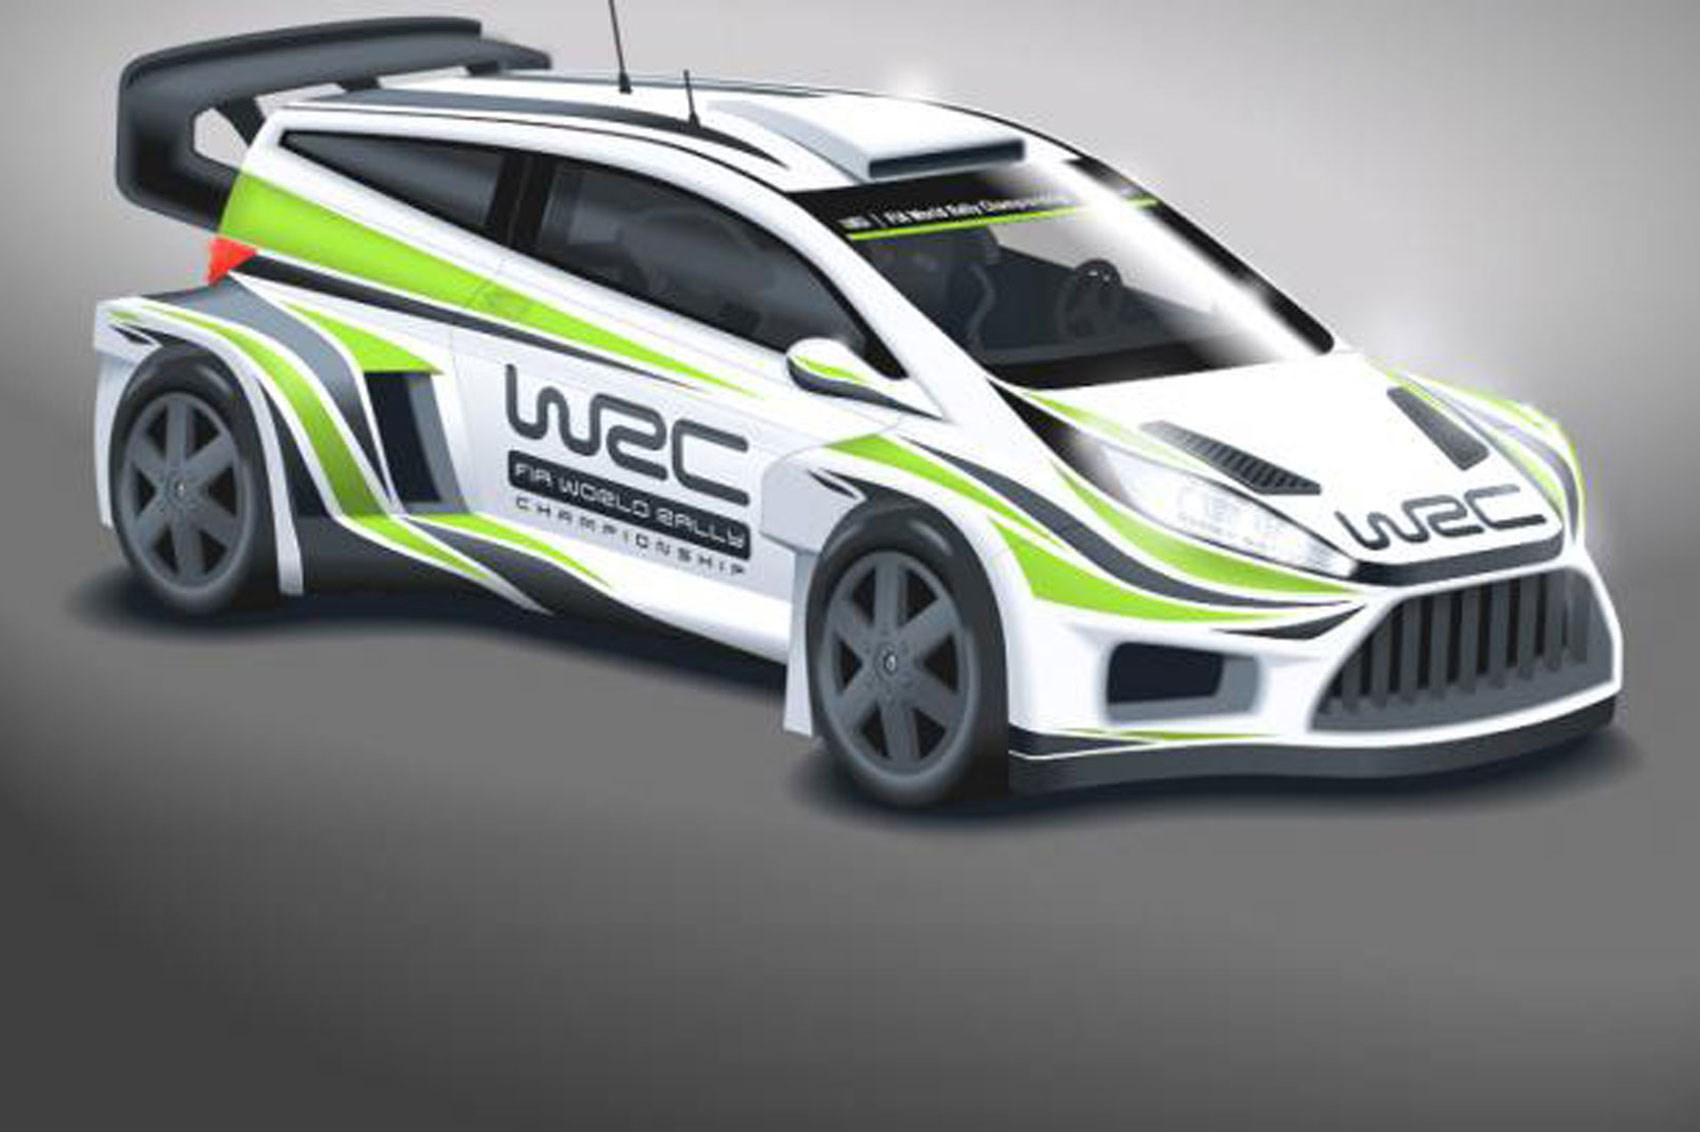 Ultrablogus  Marvelous Wild New Look For Wrc Cars In  By Car Magazine With Luxury Wrc Cars Will Get Wider Bodies Bigger Wings And More Power For  With Lovely Honda Civic  Interior Also Ford Edge Interior Pictures In Addition Kia Sportage  Interior And Interior Heaters As Well As Tata Sumo Grande Interior Additionally Suzuki Esteem Interior From Carmagazinecouk With Ultrablogus  Luxury Wild New Look For Wrc Cars In  By Car Magazine With Lovely Wrc Cars Will Get Wider Bodies Bigger Wings And More Power For  And Marvelous Honda Civic  Interior Also Ford Edge Interior Pictures In Addition Kia Sportage  Interior From Carmagazinecouk